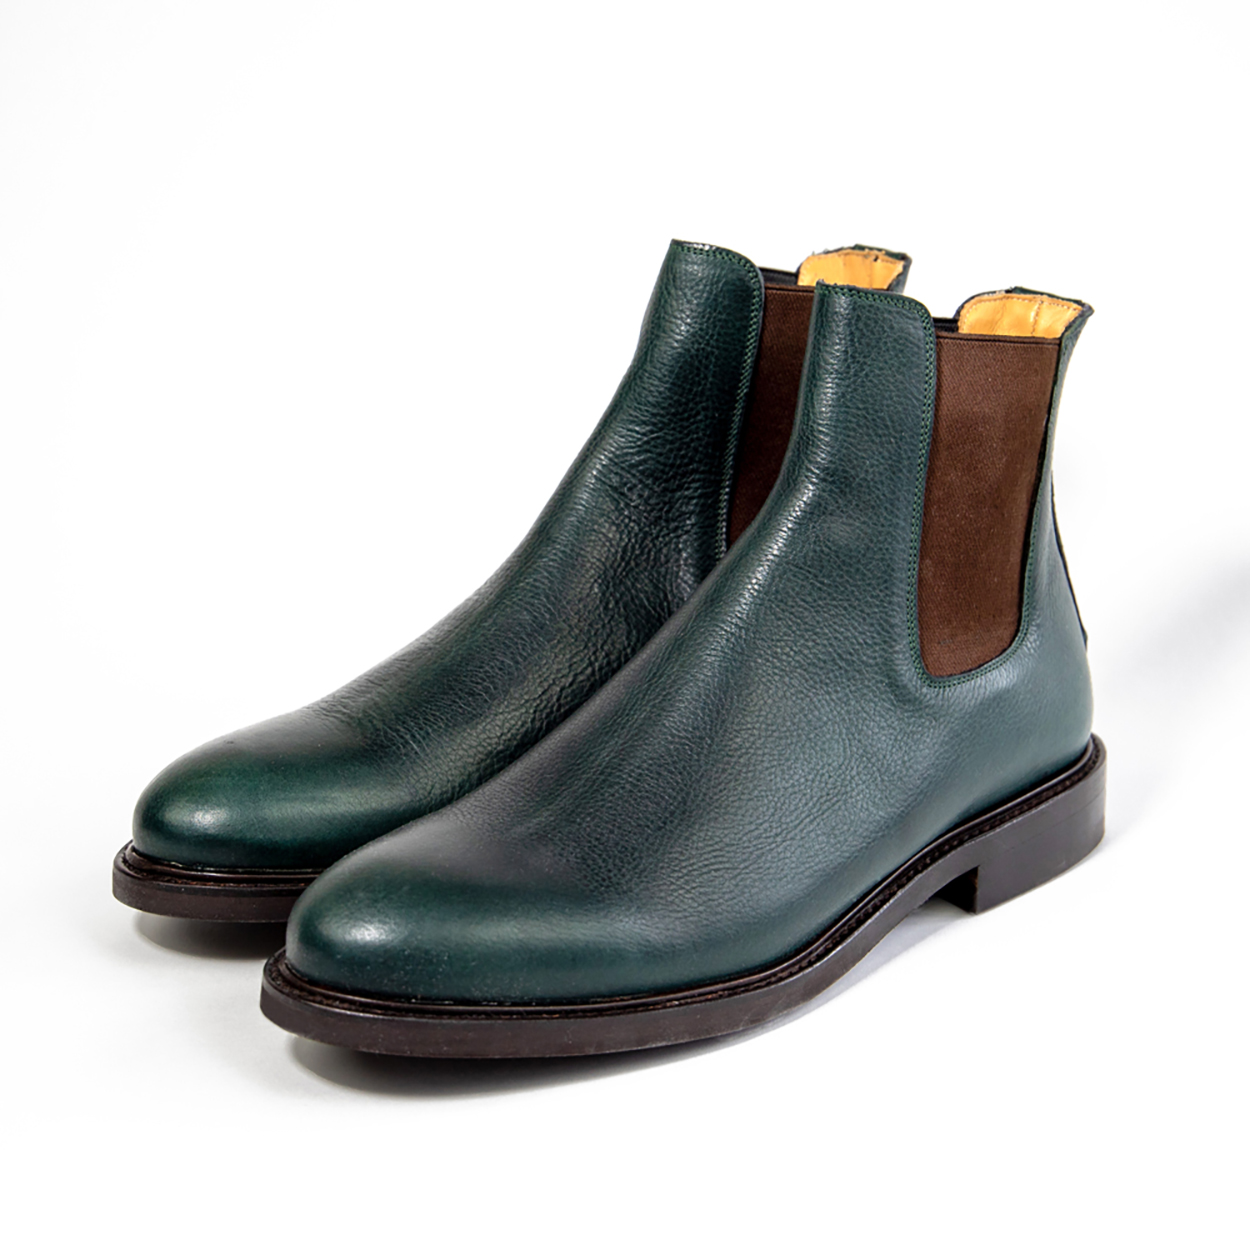 Green Goodyear welted Chelsea boots